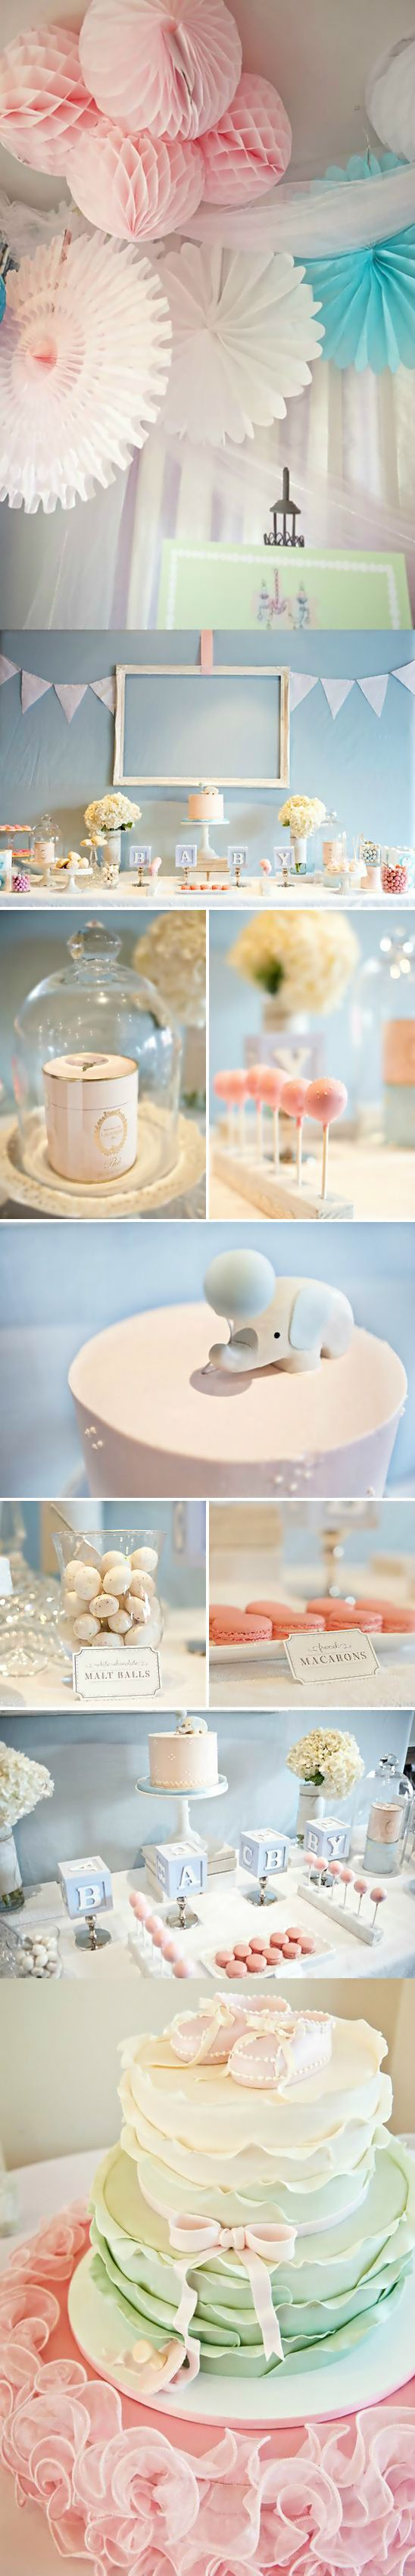 Party ● Baby Shower ● Pink & Blue Decorations